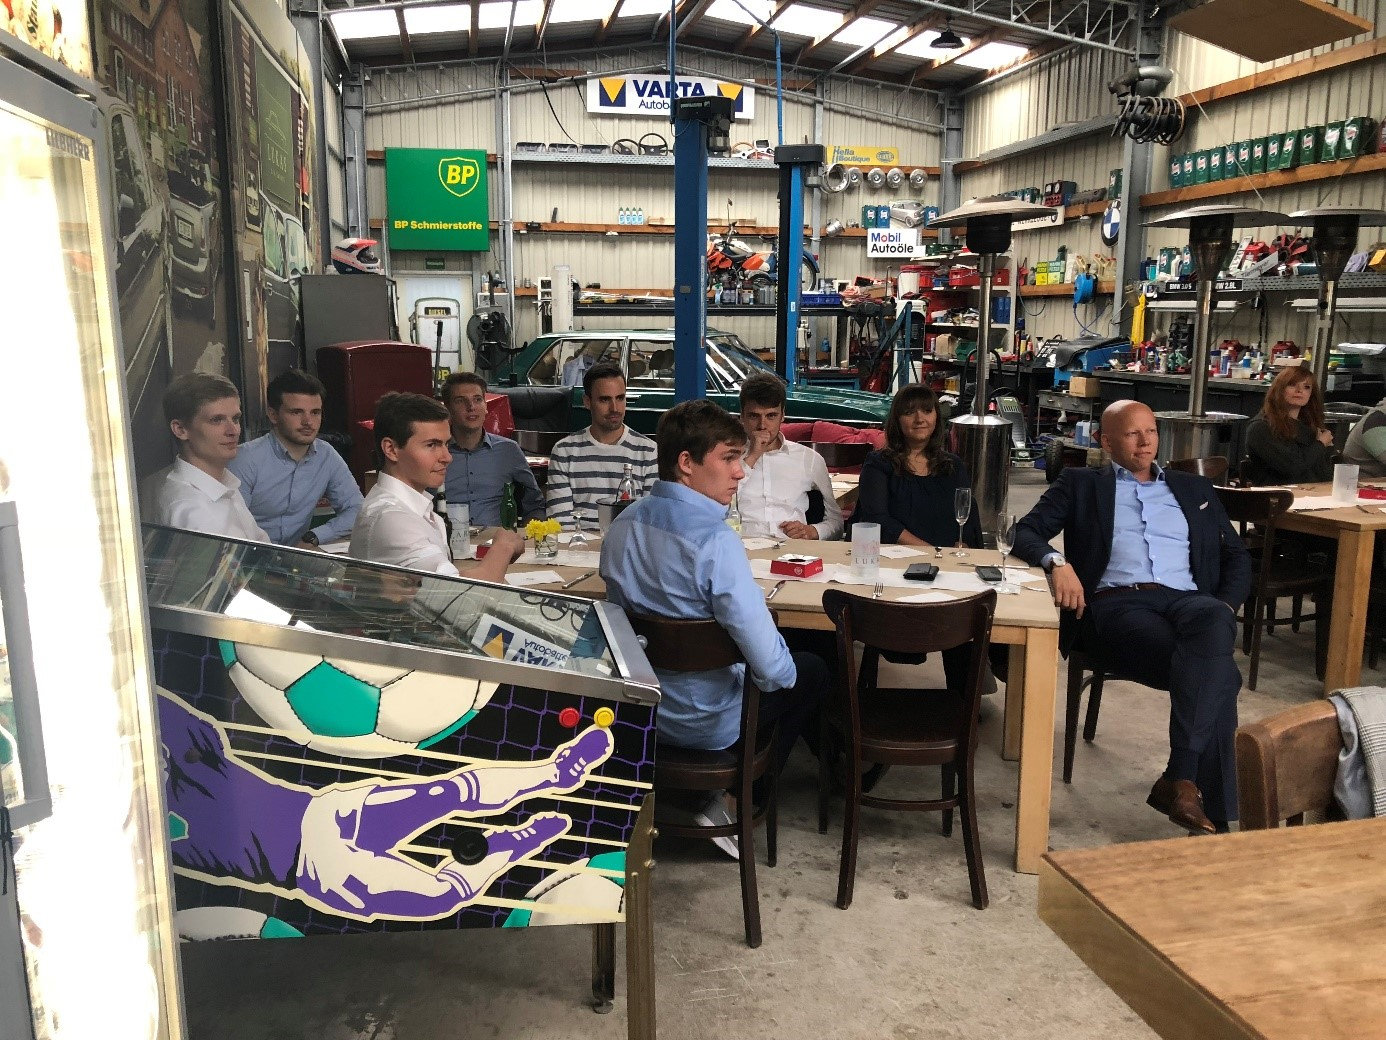 group of a diverse group of people listening to a talk, flipper machine can be seen in the front of the picture